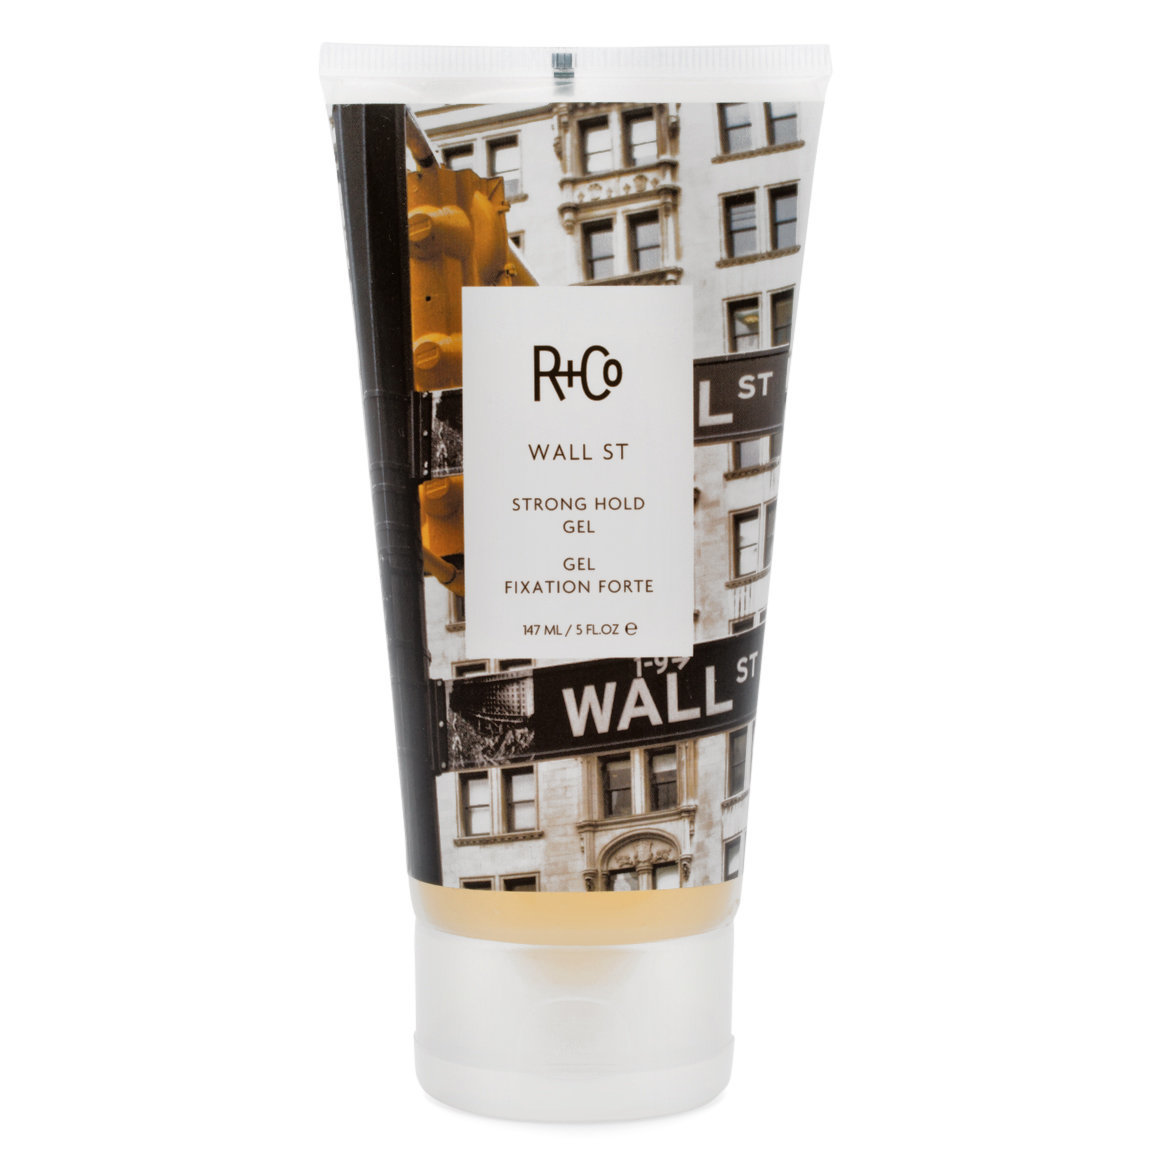 R+Co Wall St Strong Hold Gel product swatch.